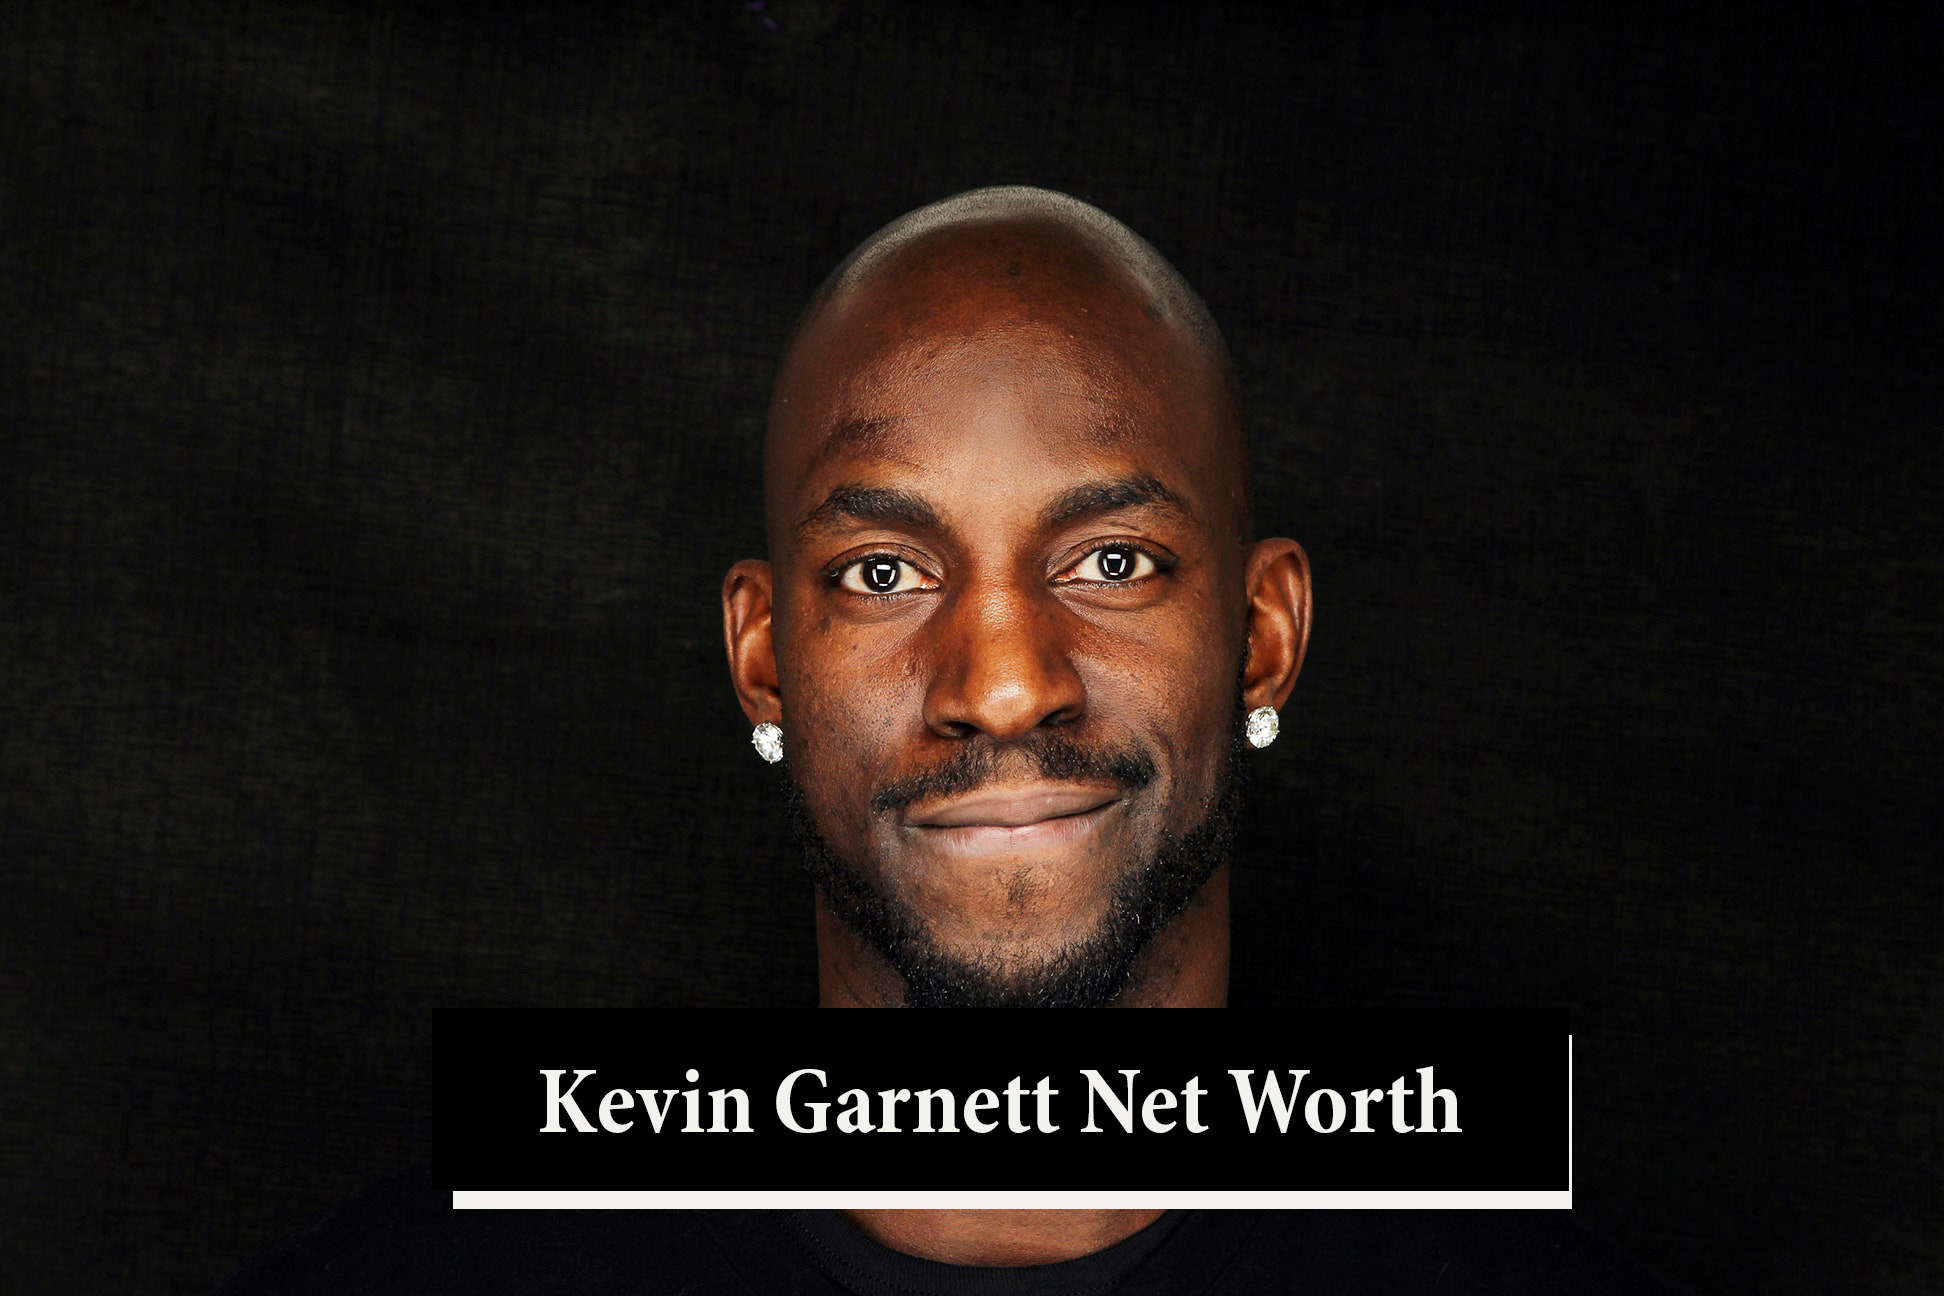 Kevin Garnett Net Worth